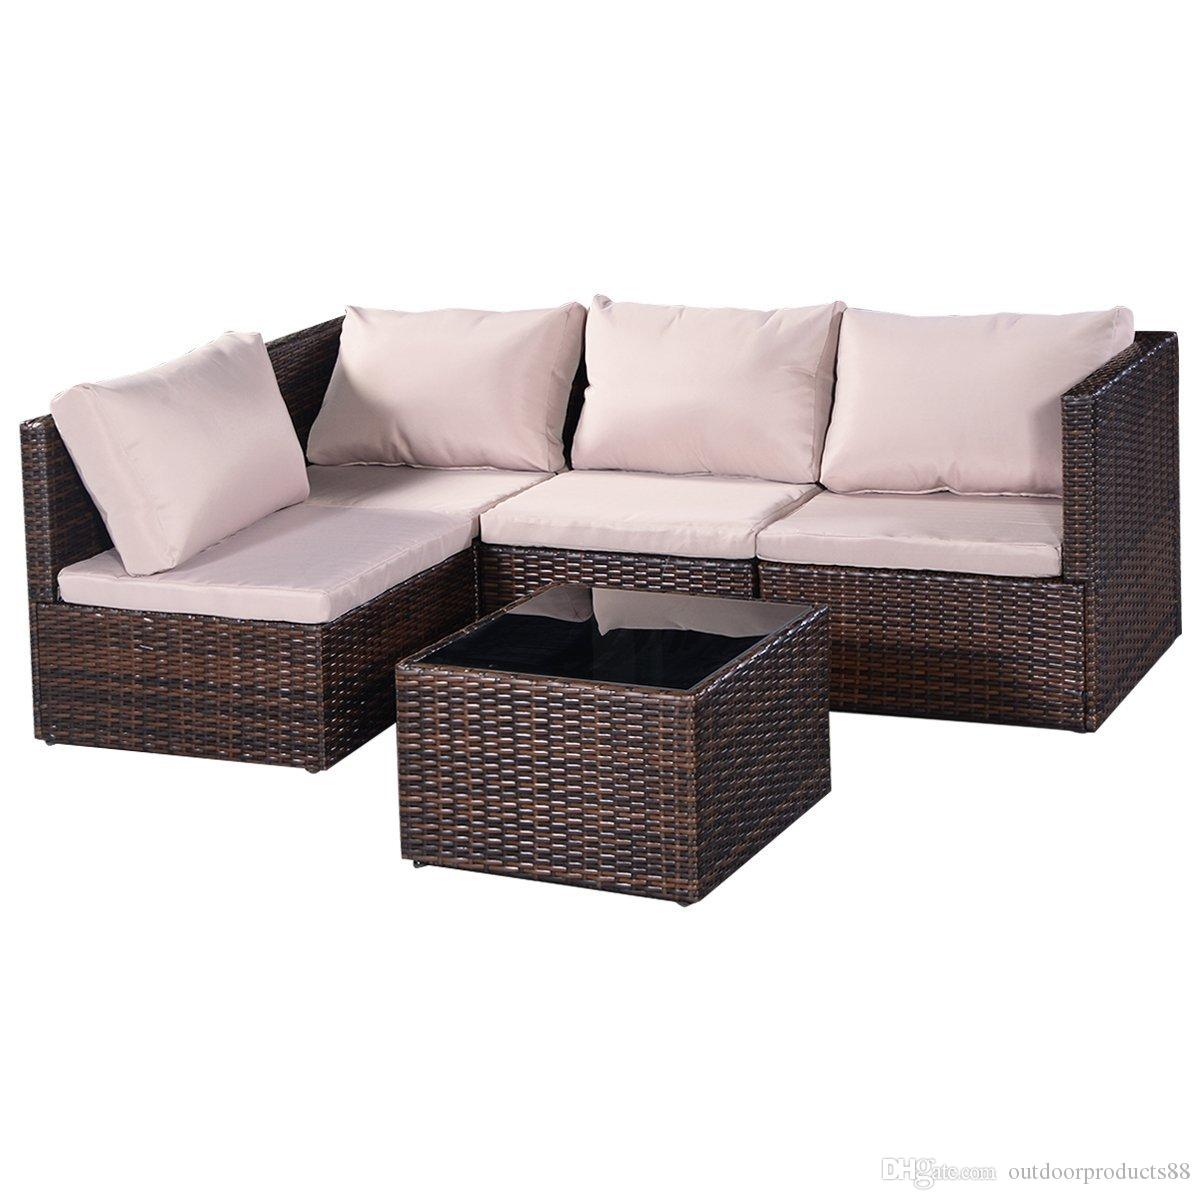 2017 new outdoor patio garden furniture wicker rattan sofa setrattan sofa furniture set patio conservatory garden seat free combination from